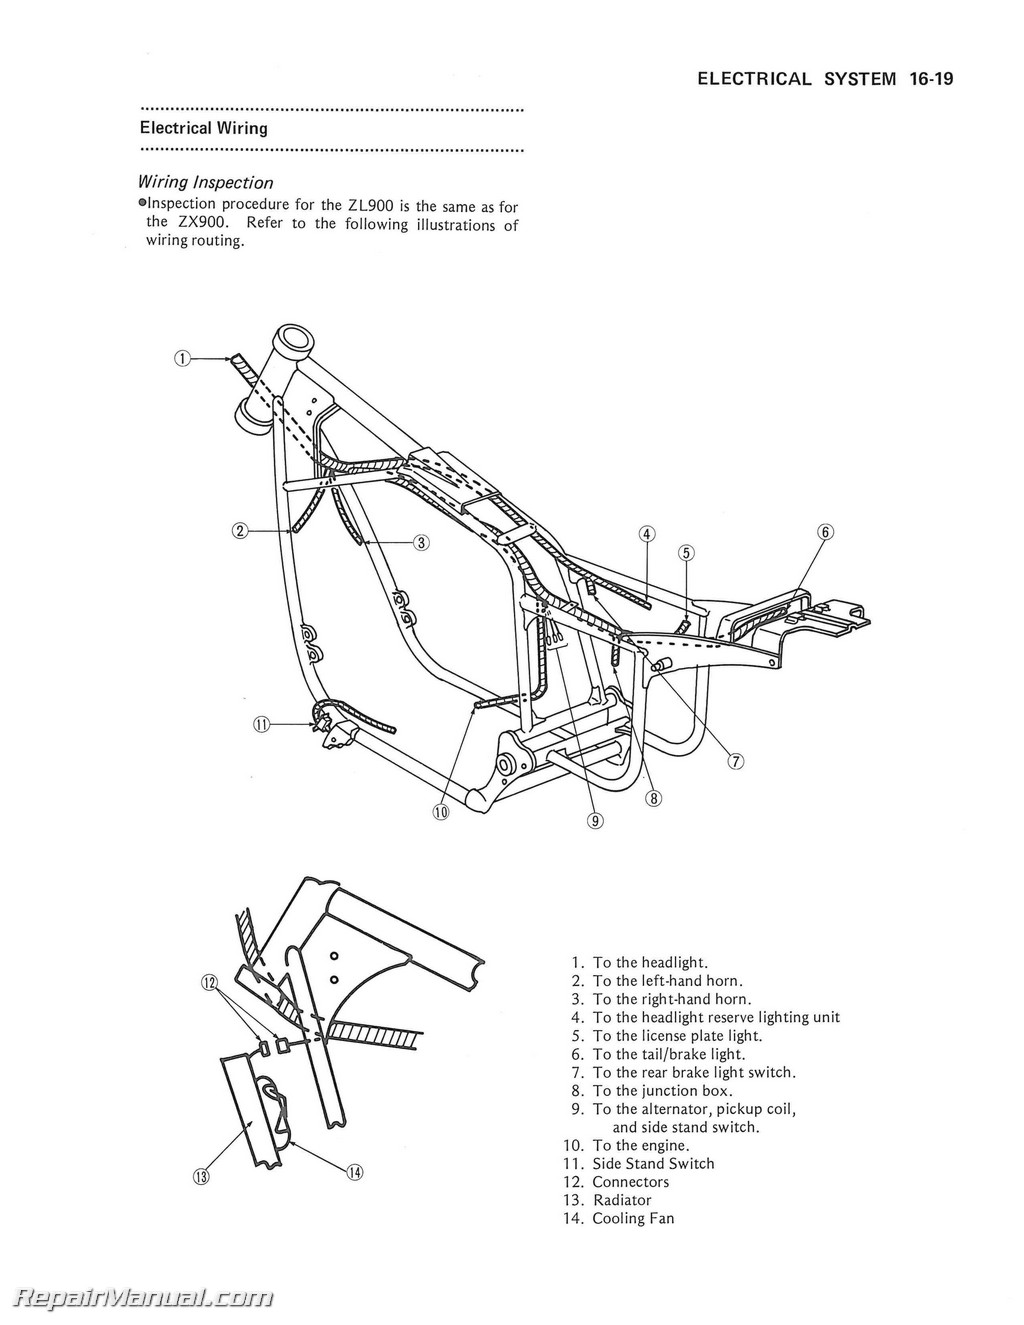 yamaha grizzly 450 wiring diagram within yamaha wiring and